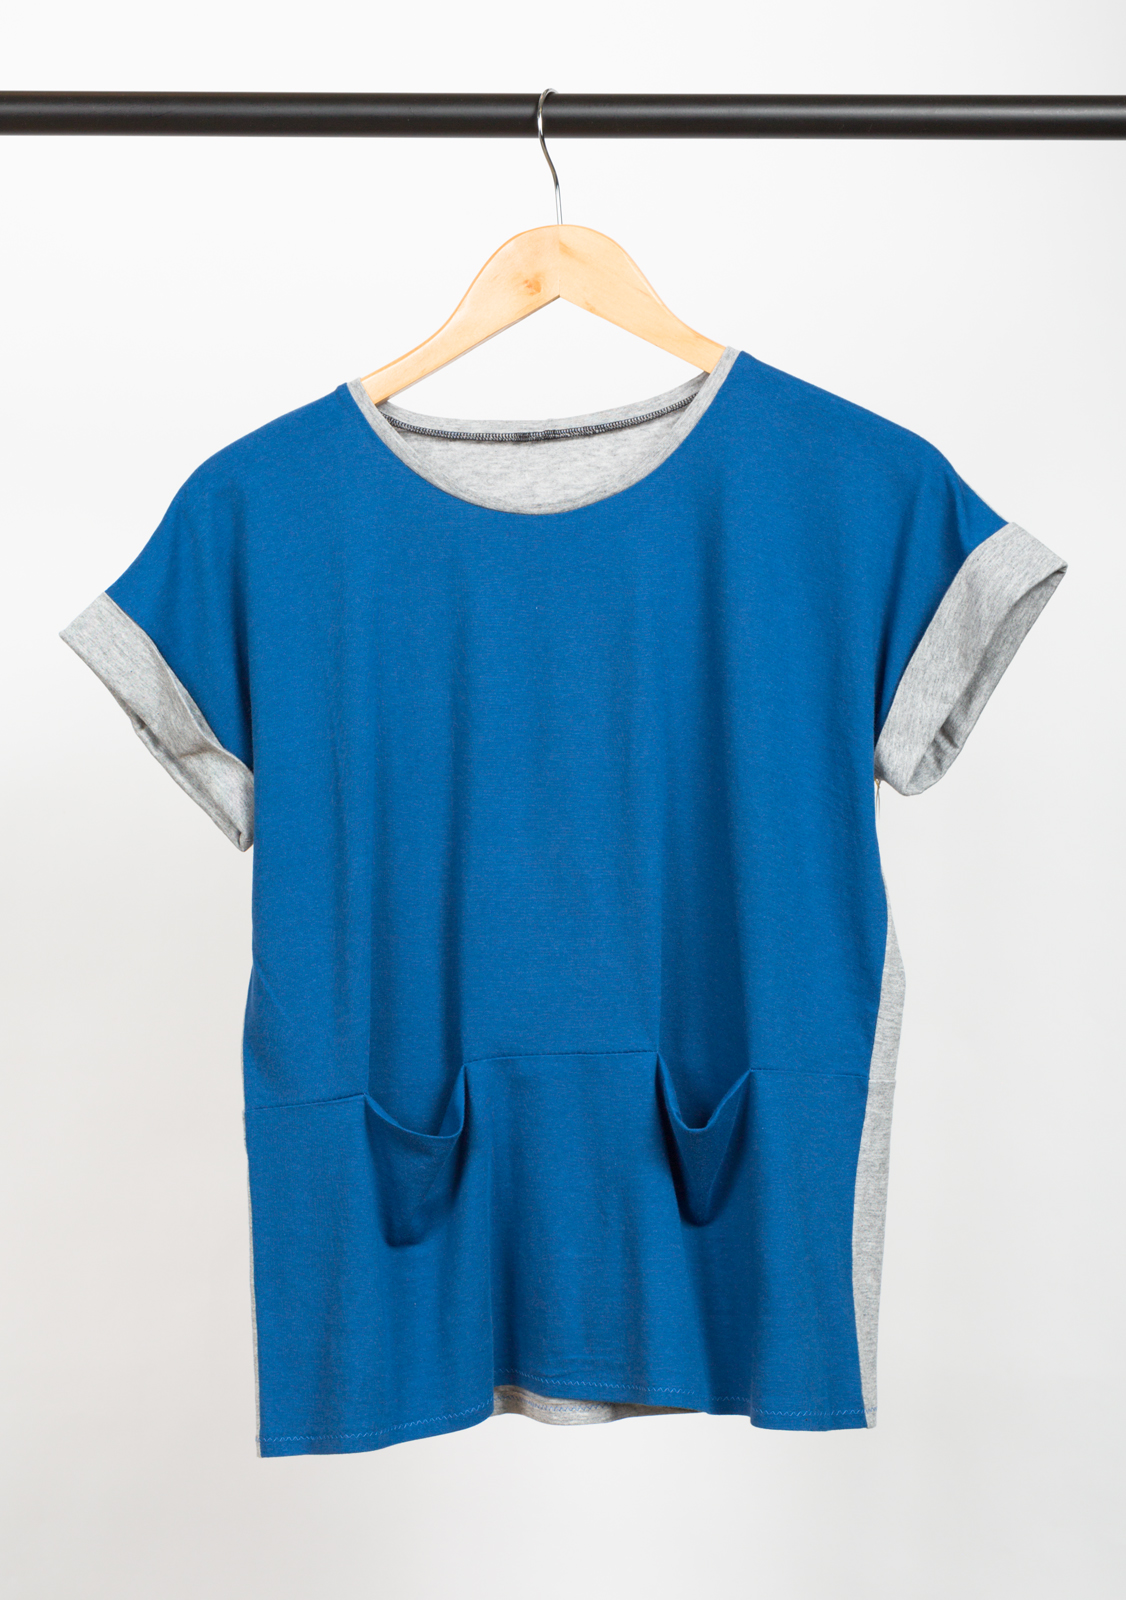 BENTO TEE  , DESIGNED BY   LIESL & CO,    MADE BY   CHRISTINE HAYNES ,  FEATURING   DANA COTTON/MODAL KNIT